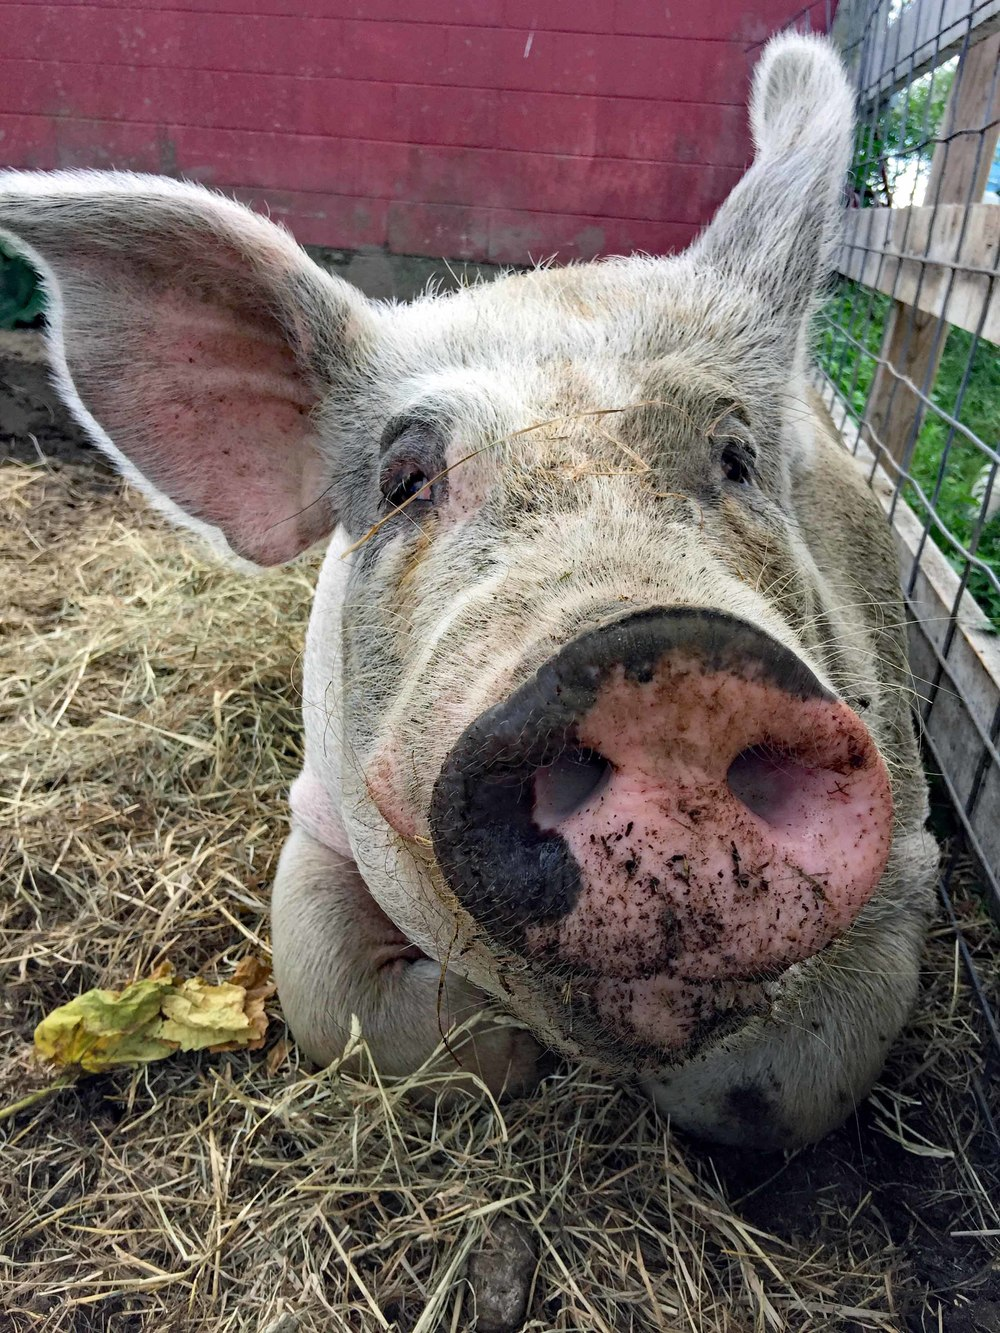 Meet China, a 700 pound pig!